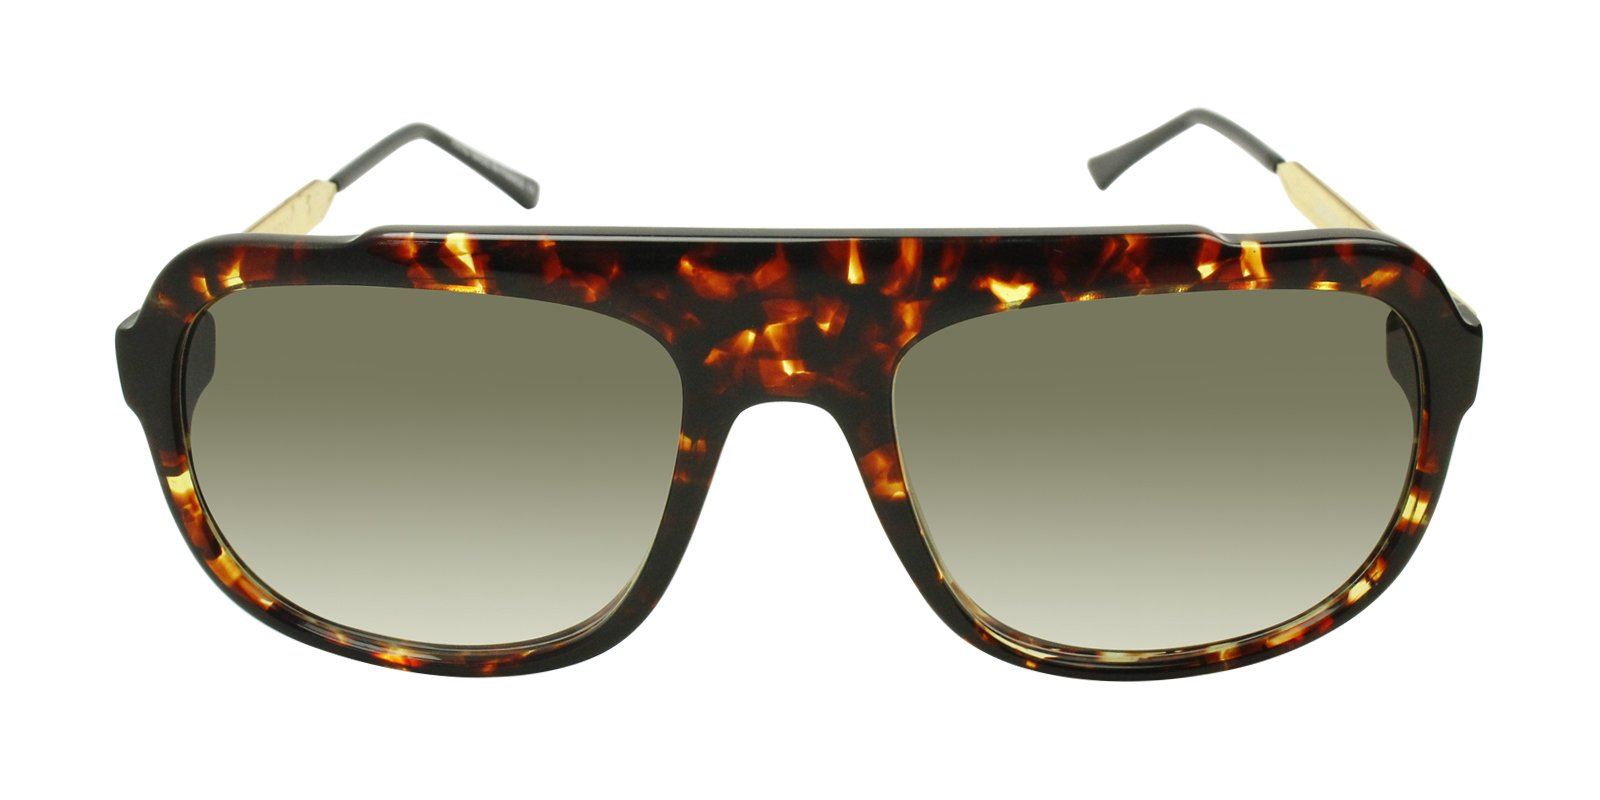 Thierry Lasry - Bowery Tortoise Rectangular Men, Women Sunglasses - 56mm-Sunglasses-Designer Eyes